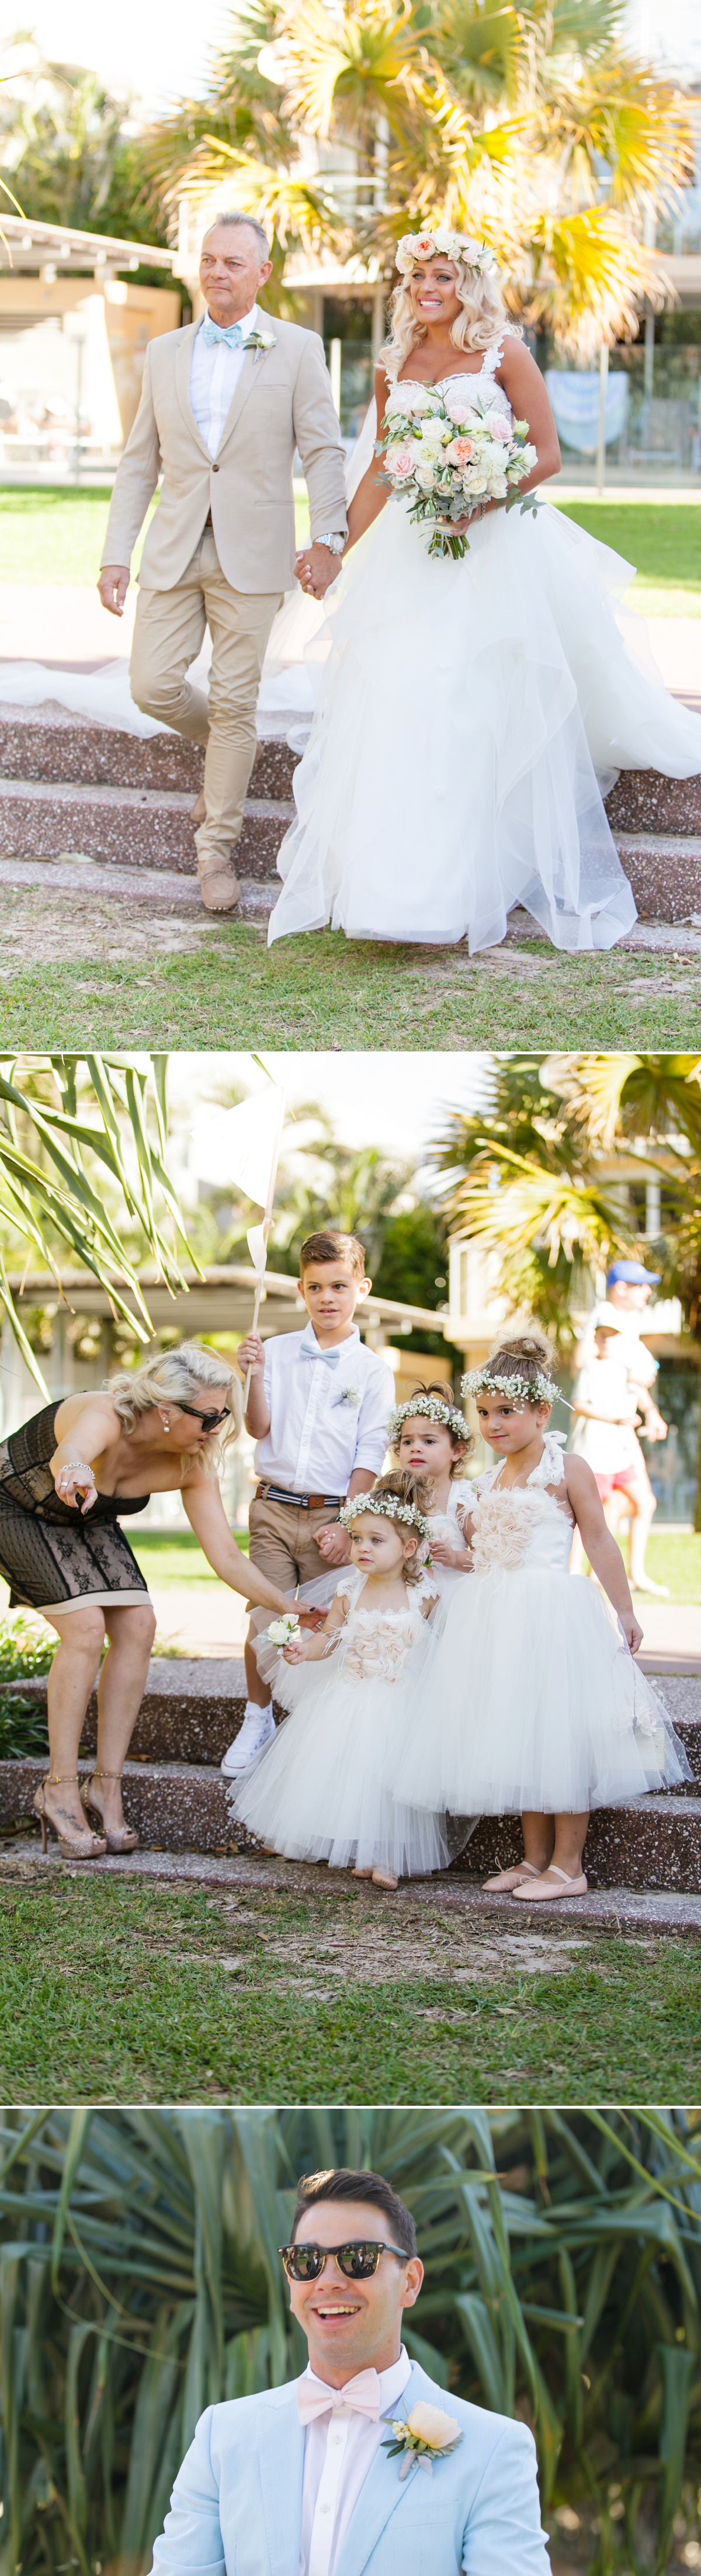 Noosa-wedding-ceremony-details